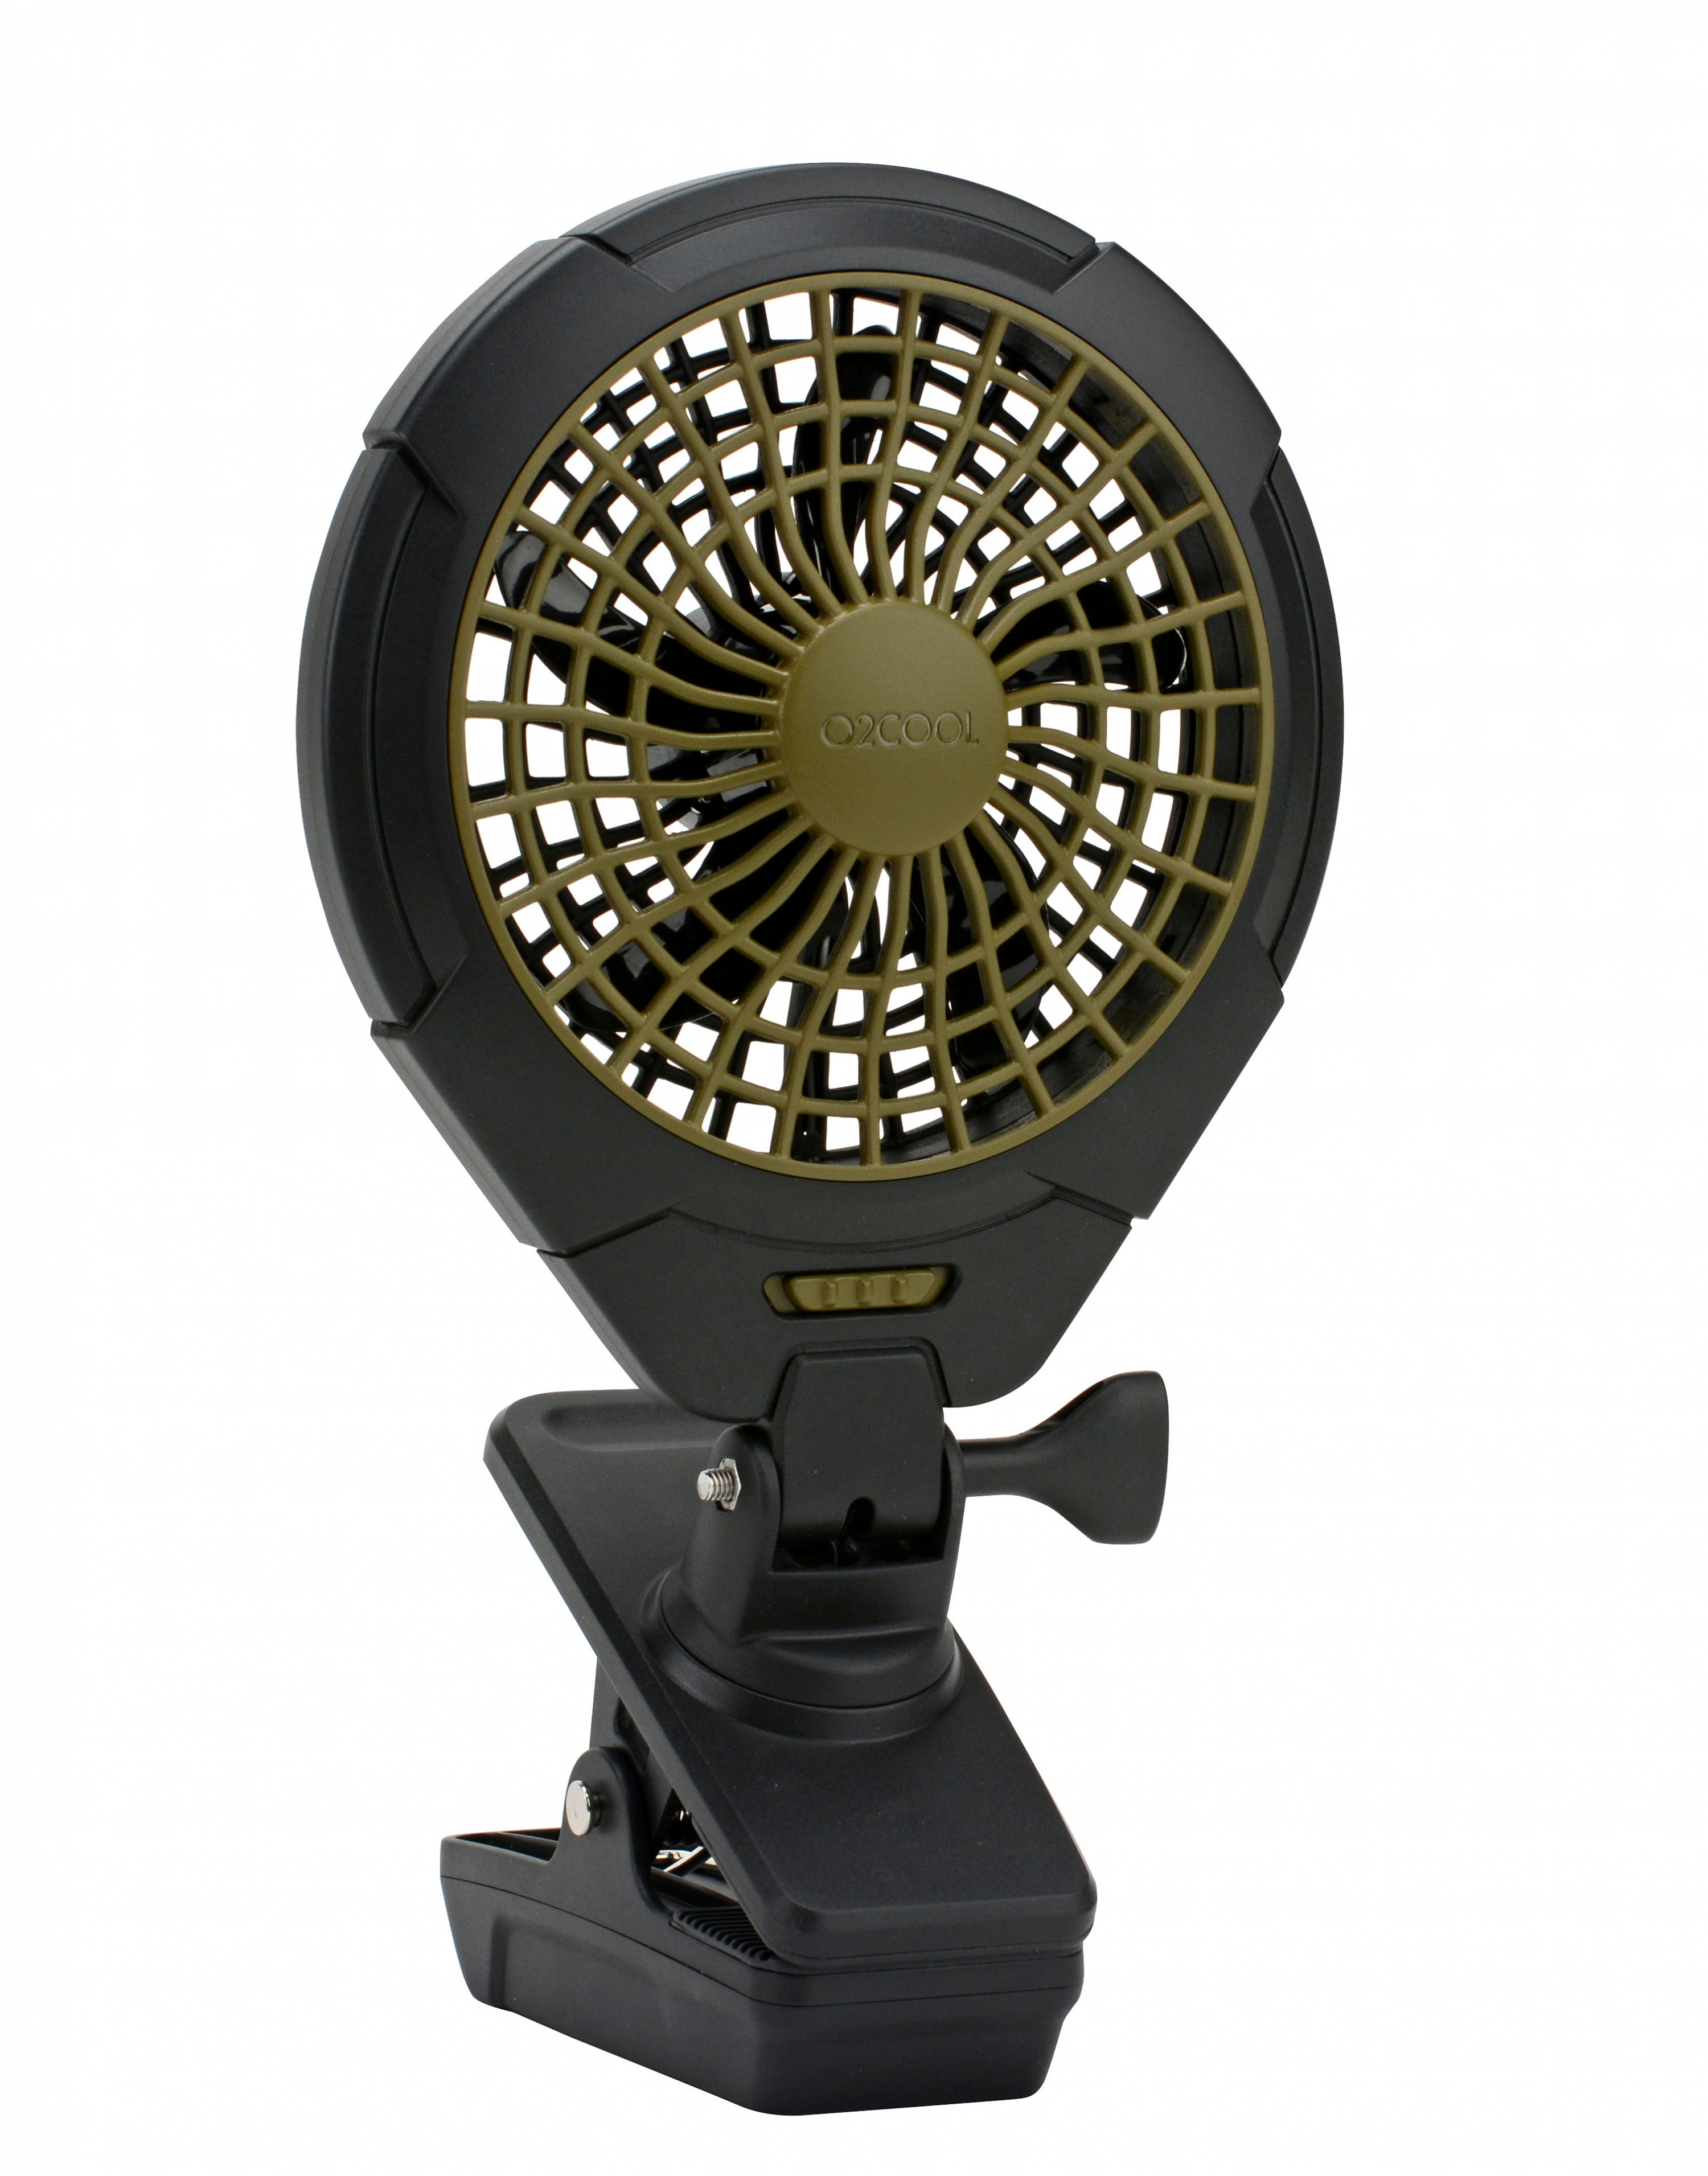 02 Cool Battery Operated Fan : Healthcare battery operated fans by o cool airflow